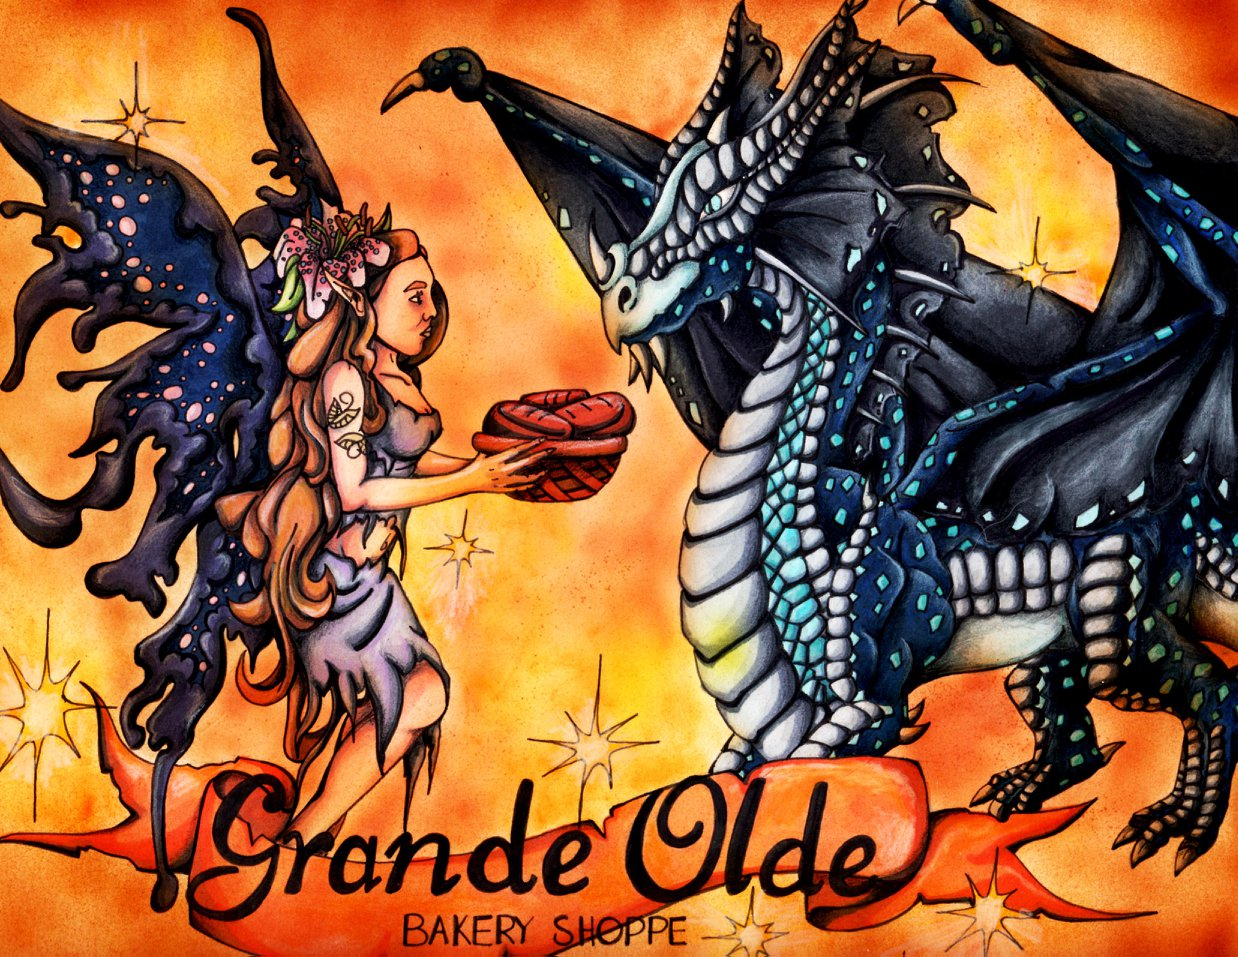 Grande Olde Bakery Shoppe Illustrated Lo